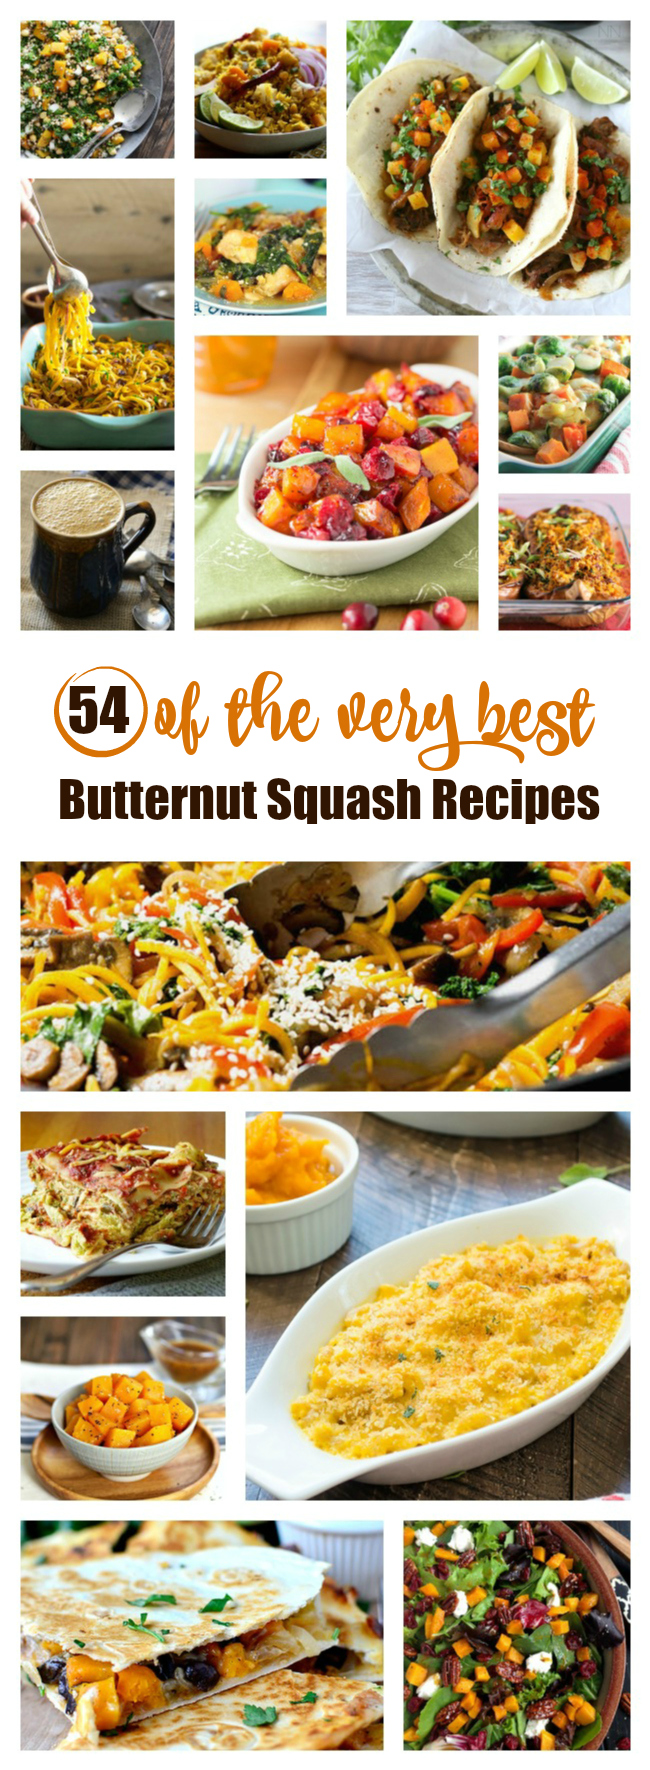 Nom nom. Butternut Squash is THE MAN. Here are endless recipes to try.